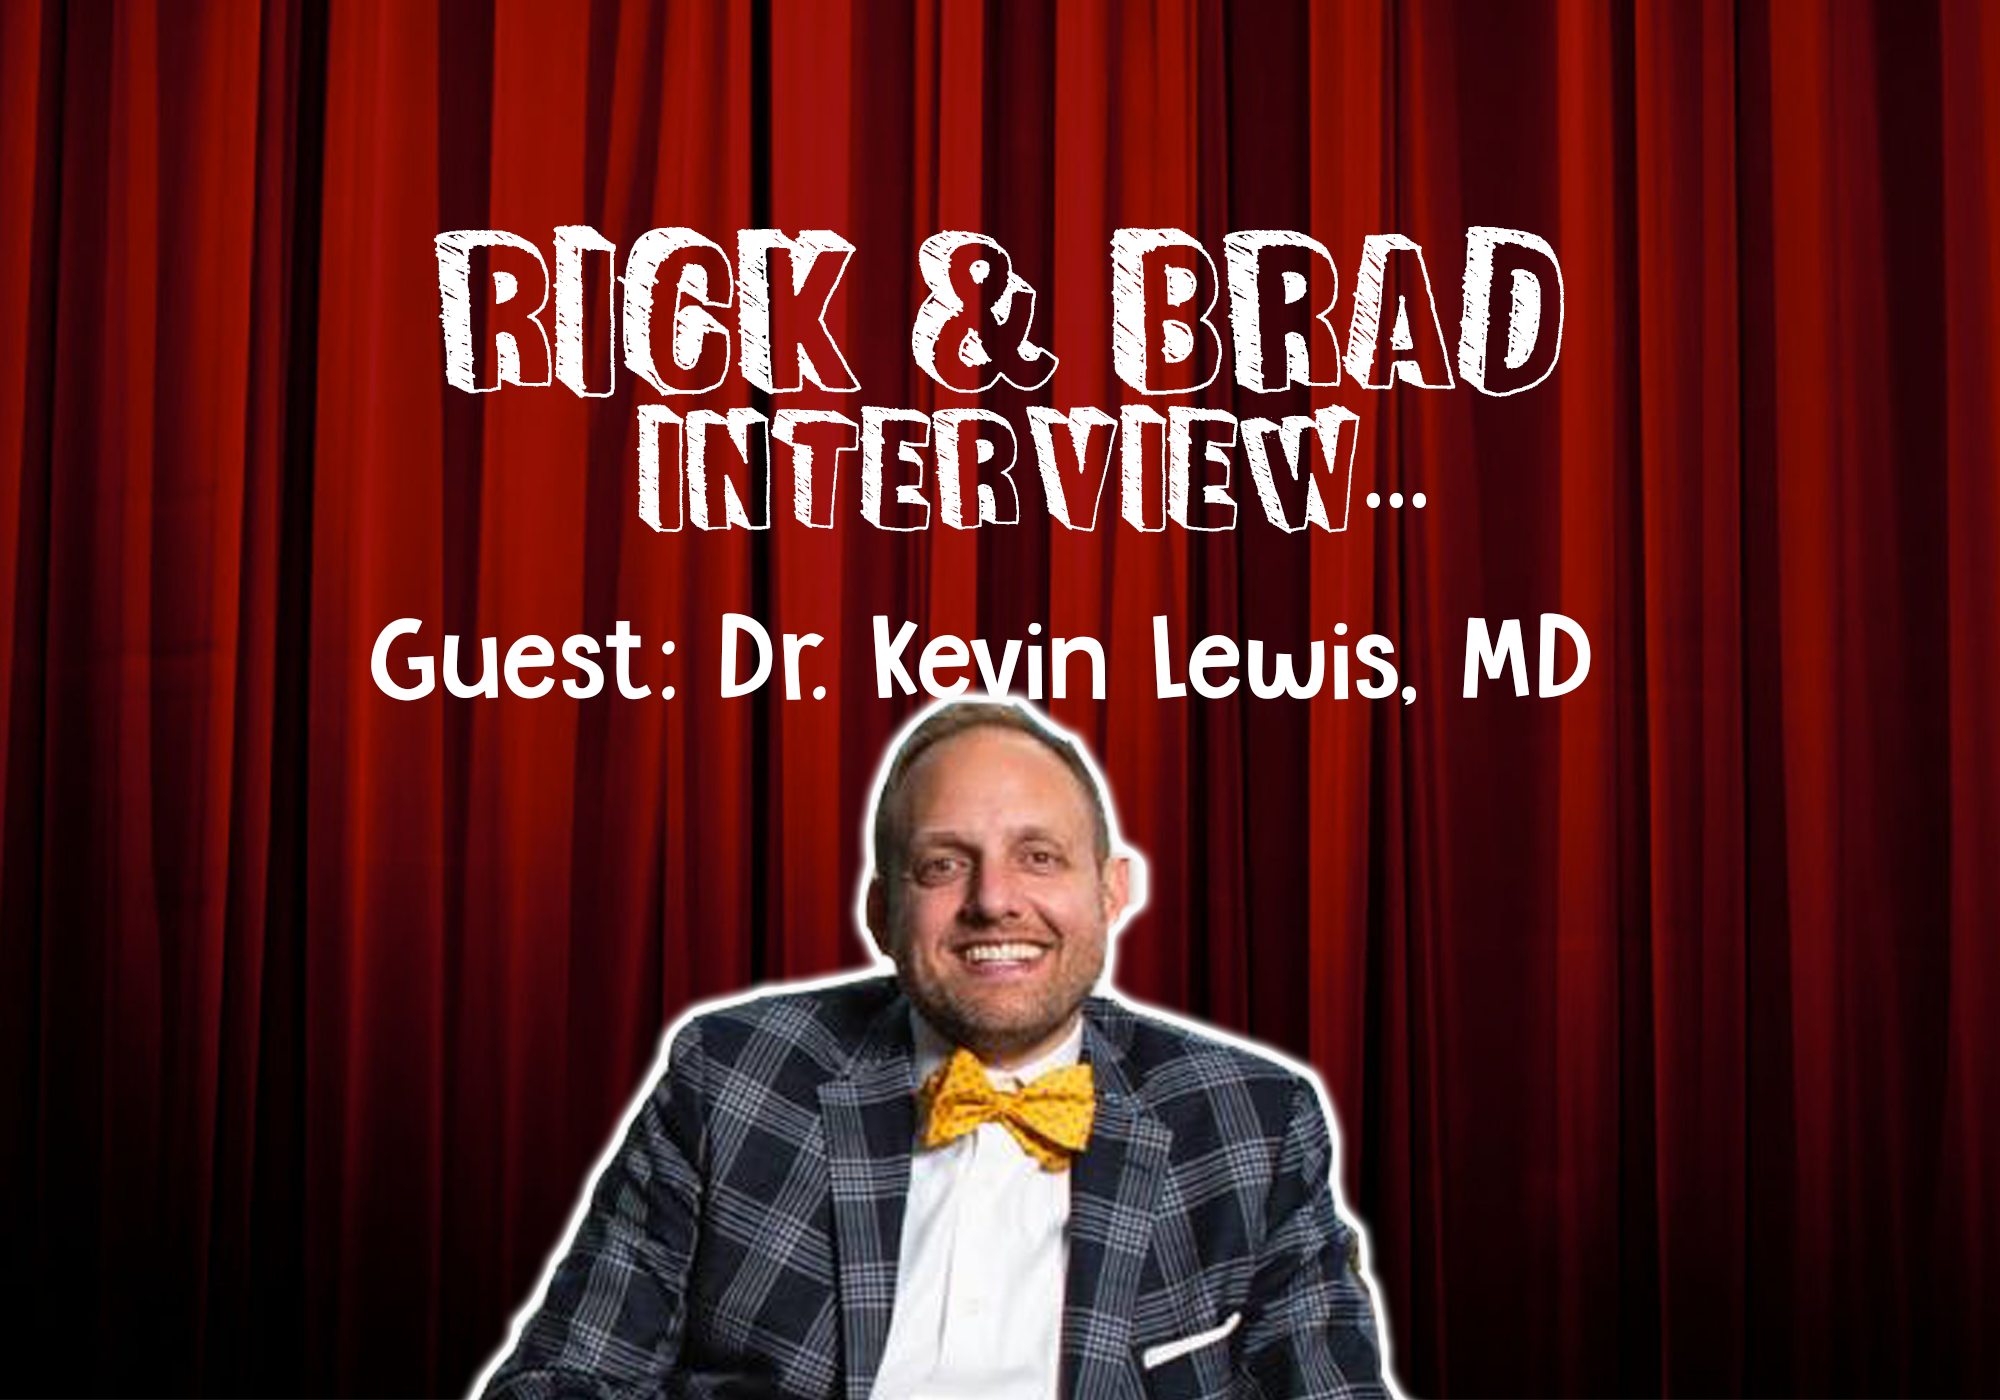 [PODCAST] Dr. Lewis Takes Calls with Rick & Brad